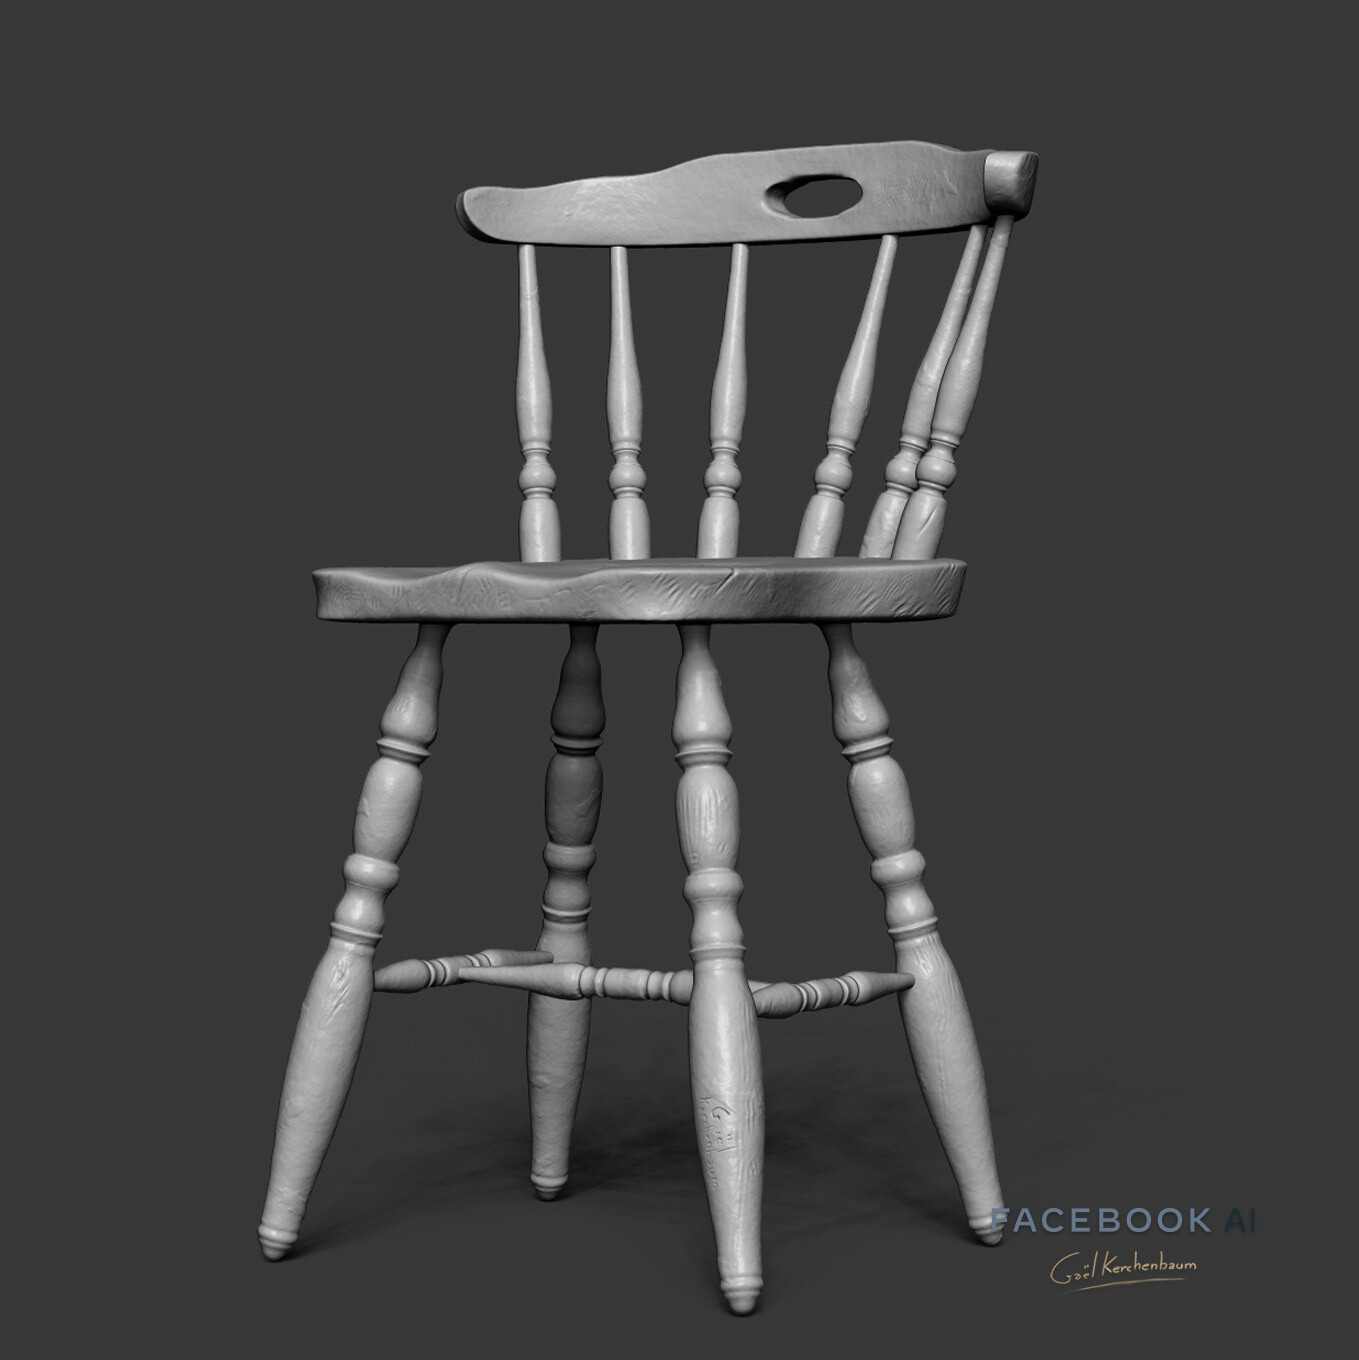 Chair asset, done in ZBrush